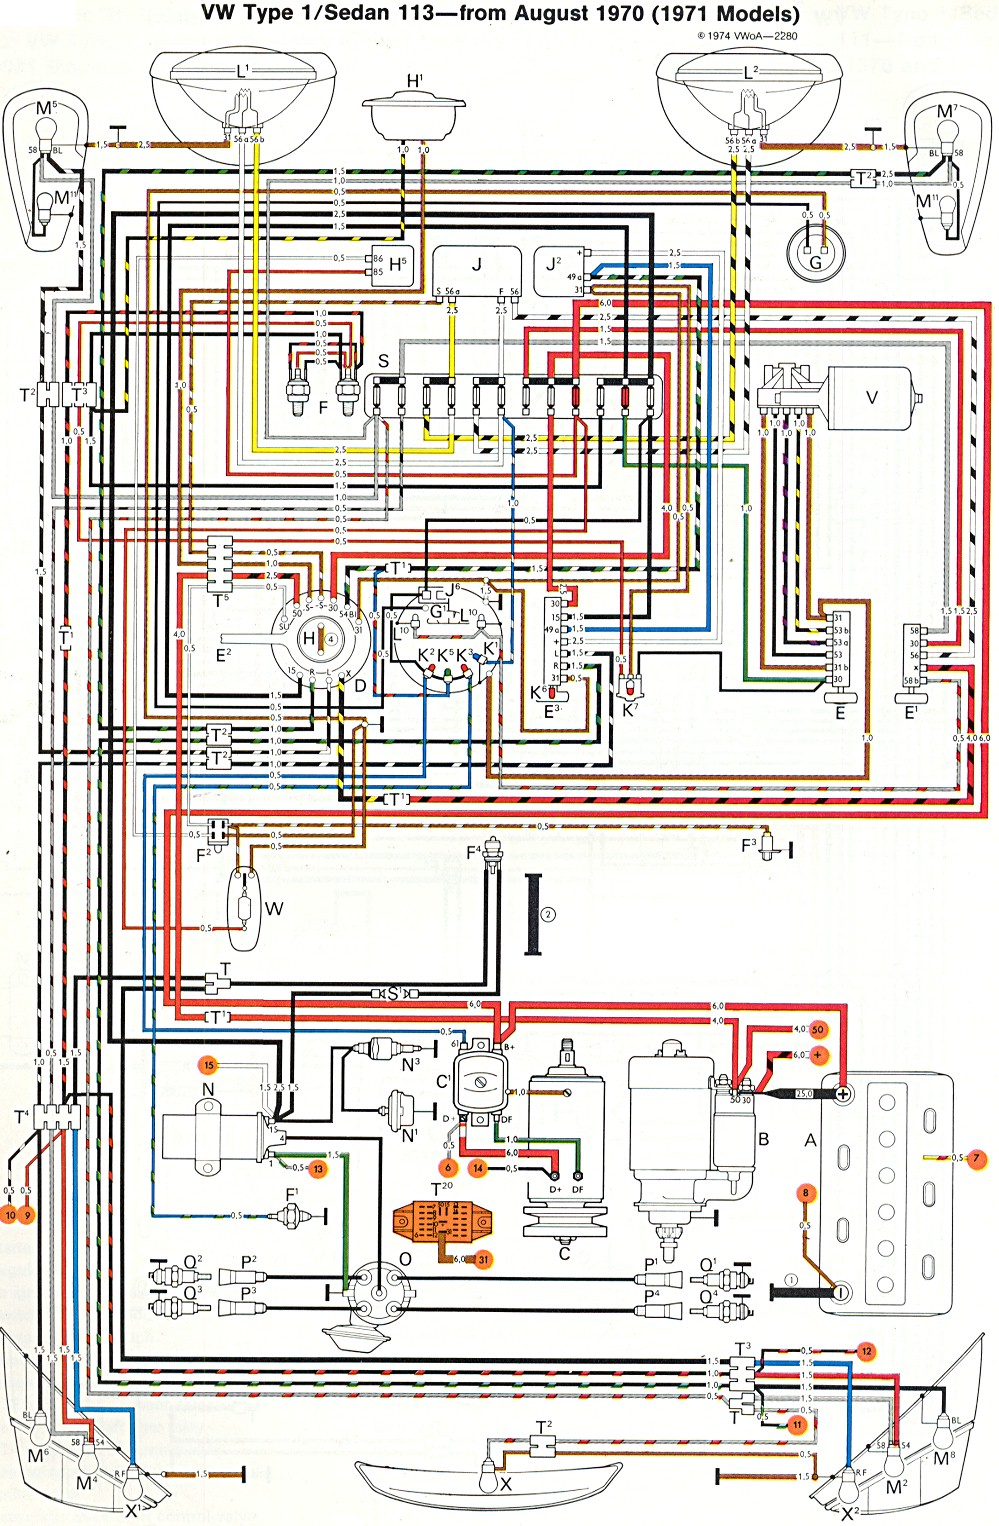 1971 volkswagen wiring diagram simple wiring diagram volkswagen super  beetle transmission 1971 super beetle wiring diagram